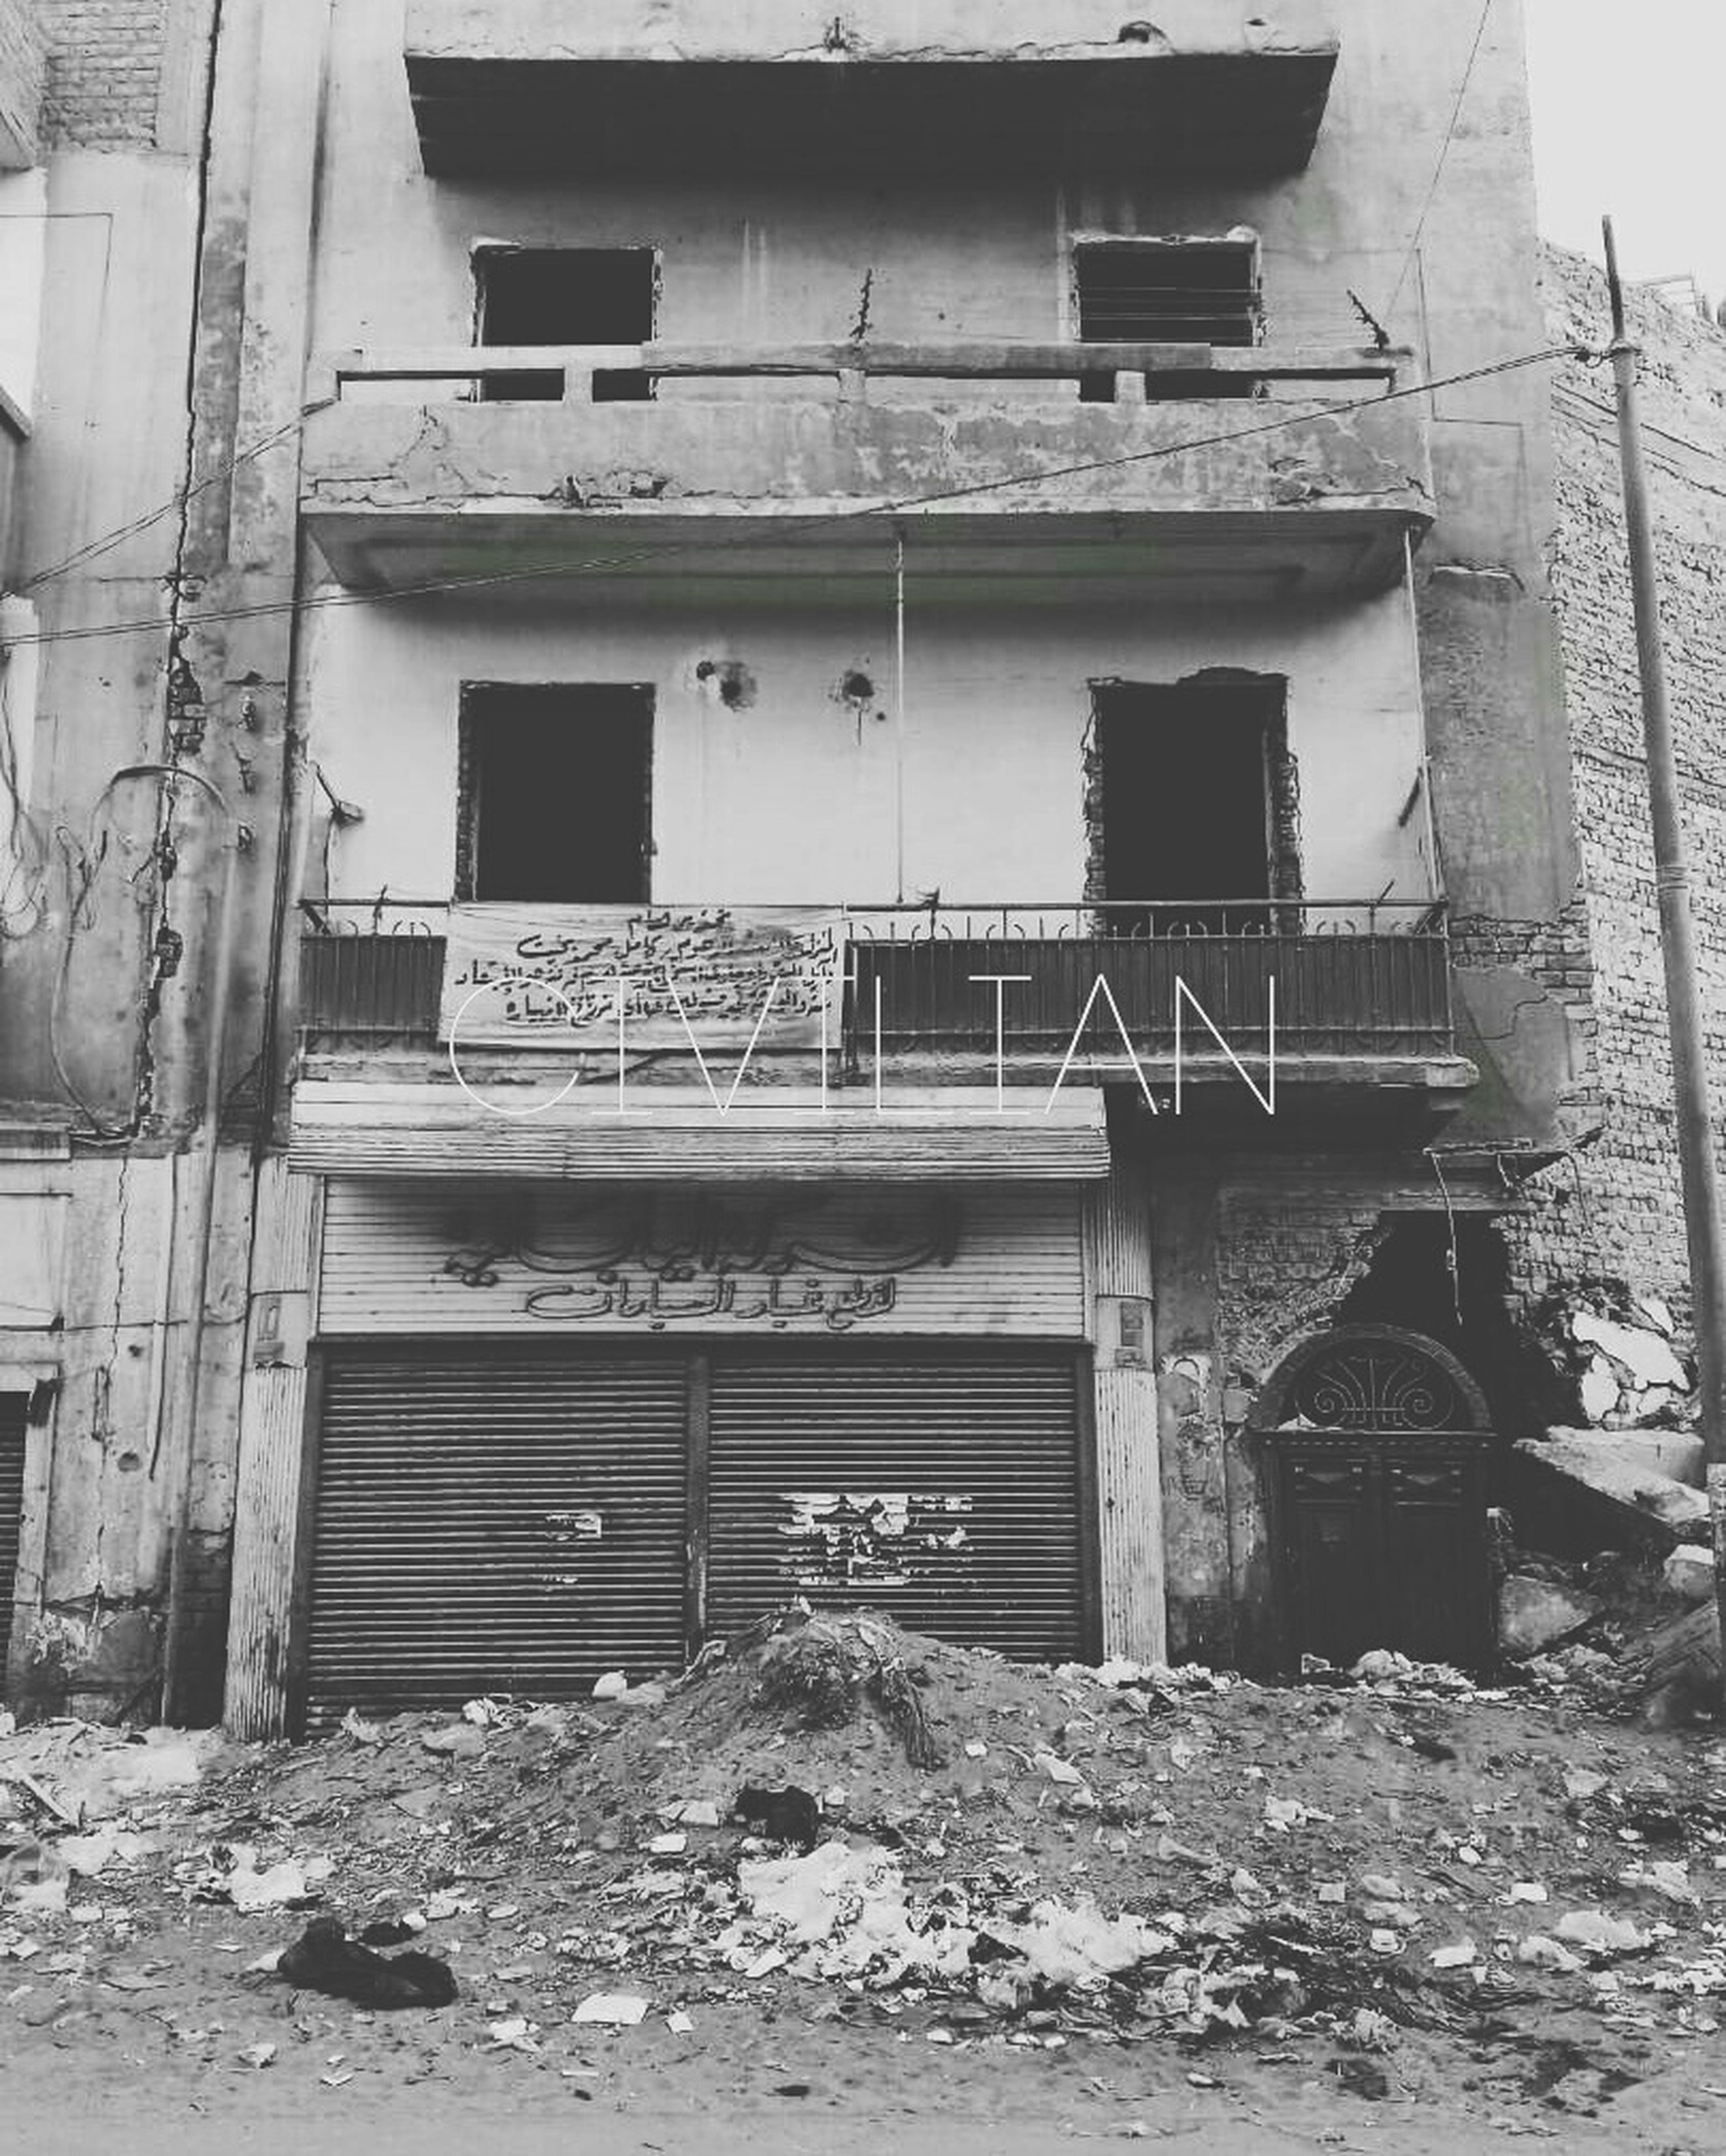 architecture, abandoned, built structure, building exterior, damaged, house, run-down, weathered, no people, bad condition, day, outdoors, destruction